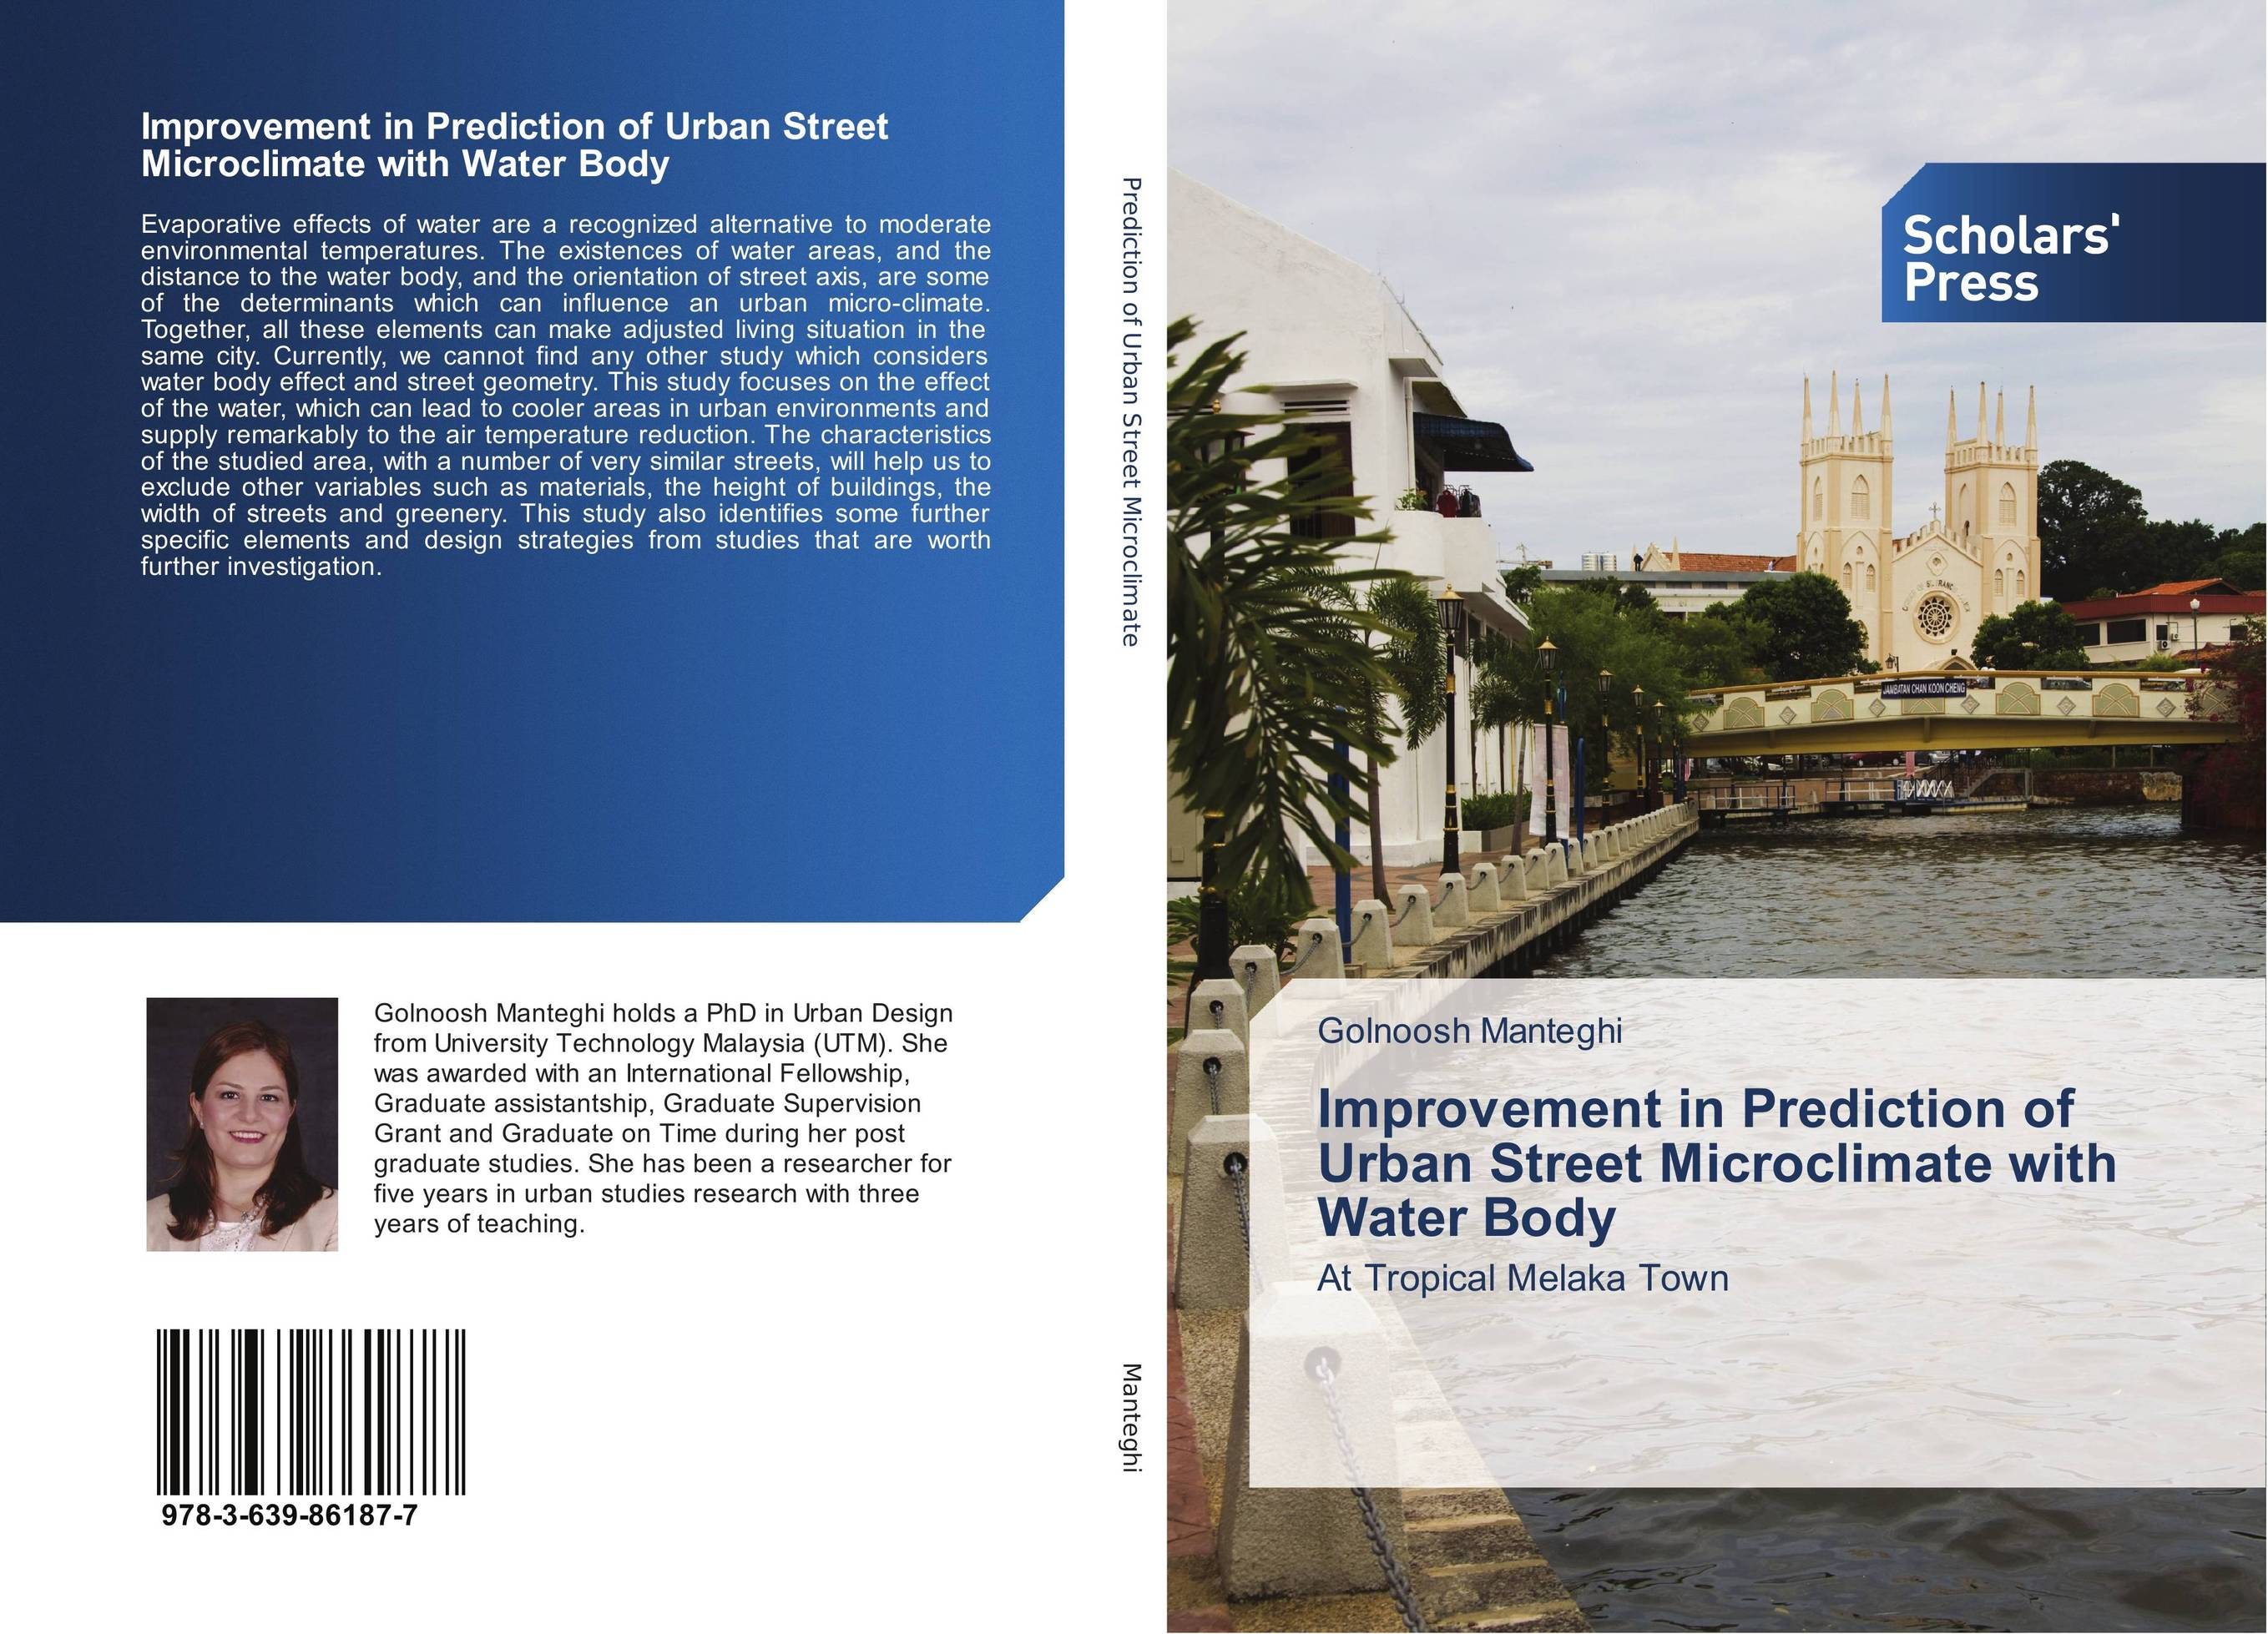 Improvement in Prediction of Urban Street Microclimate with Water Body bride of the water god v 3